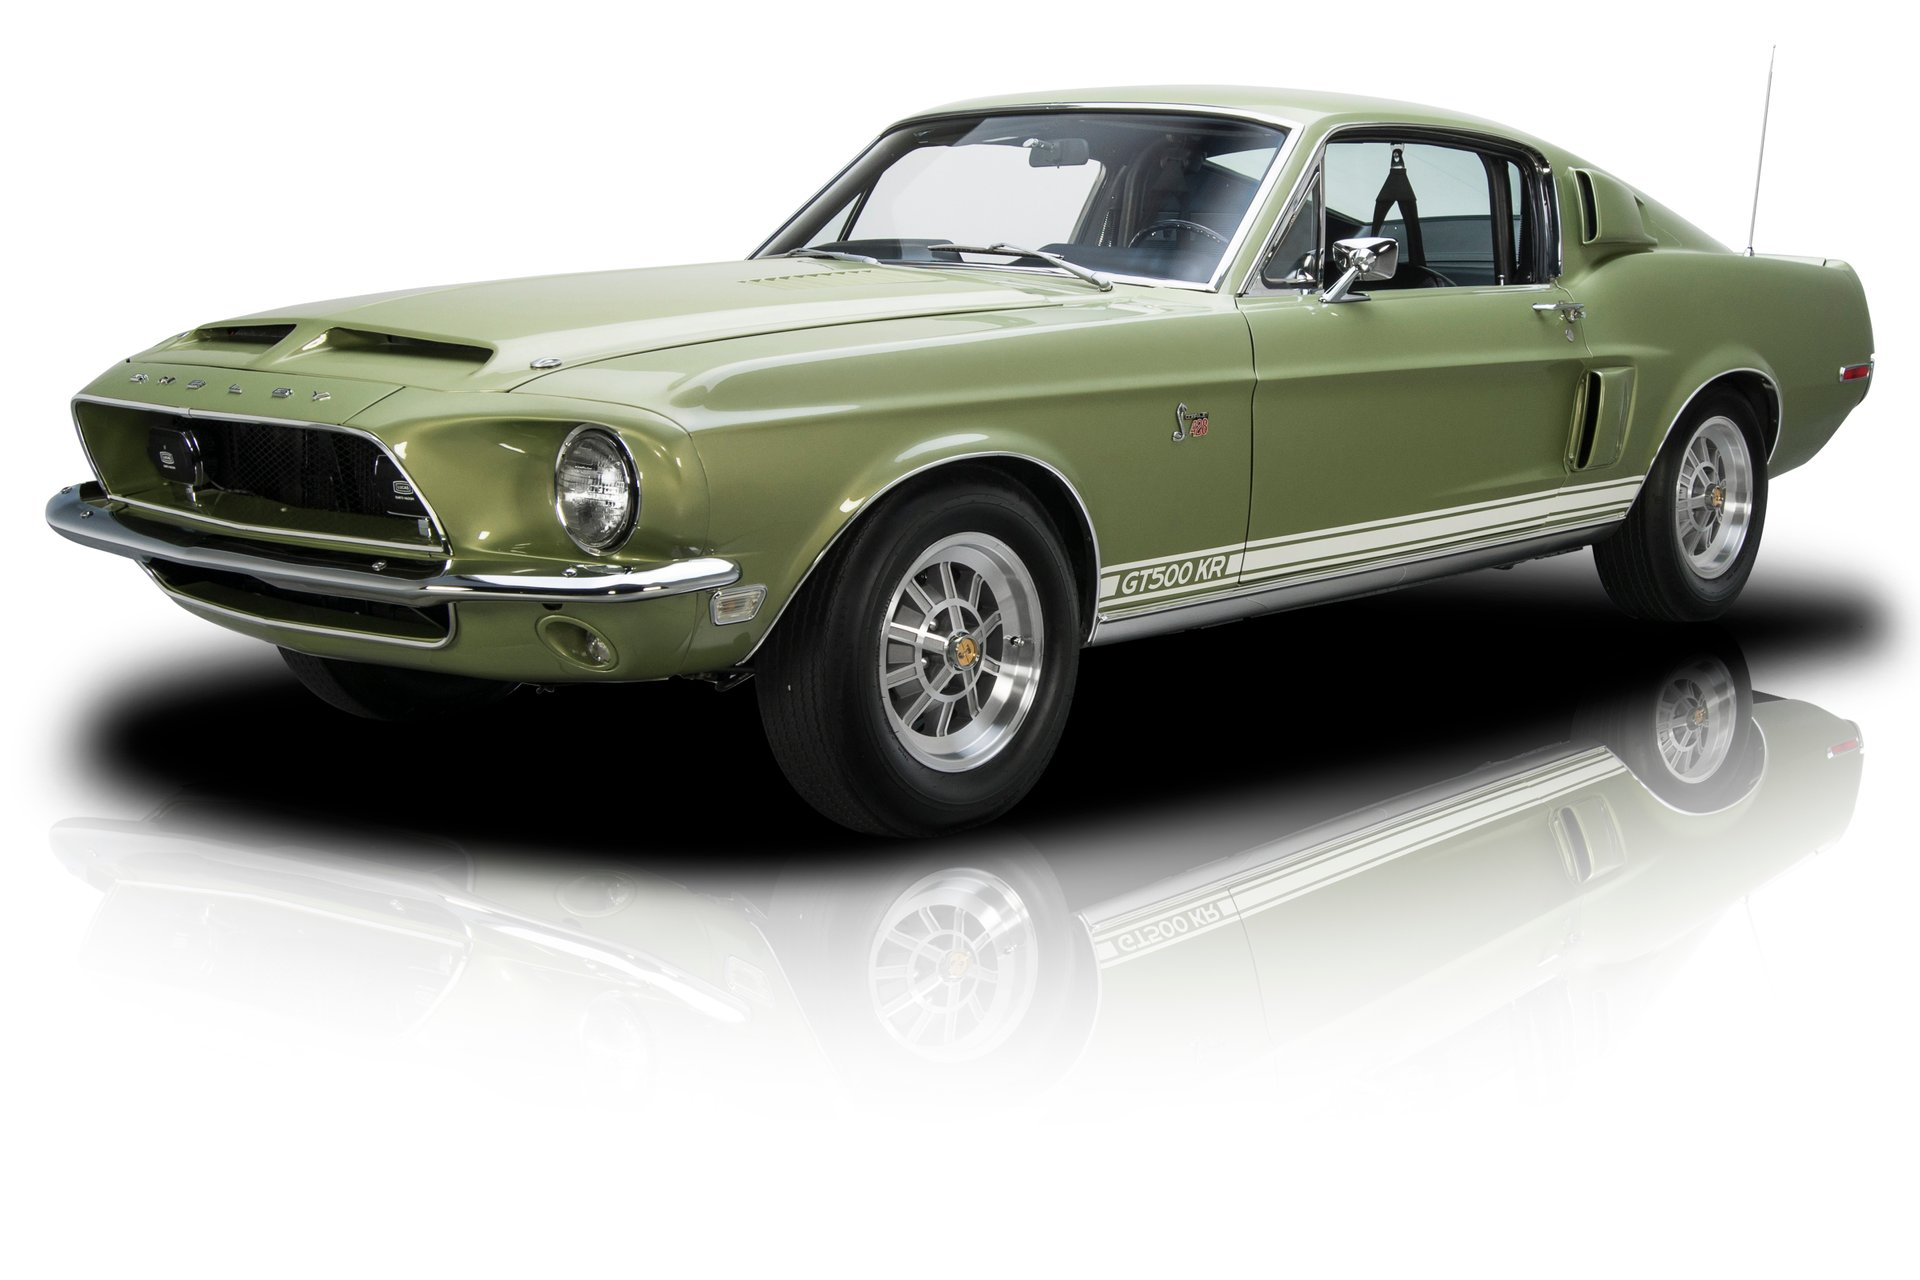 1968 ford mustang gt500kr